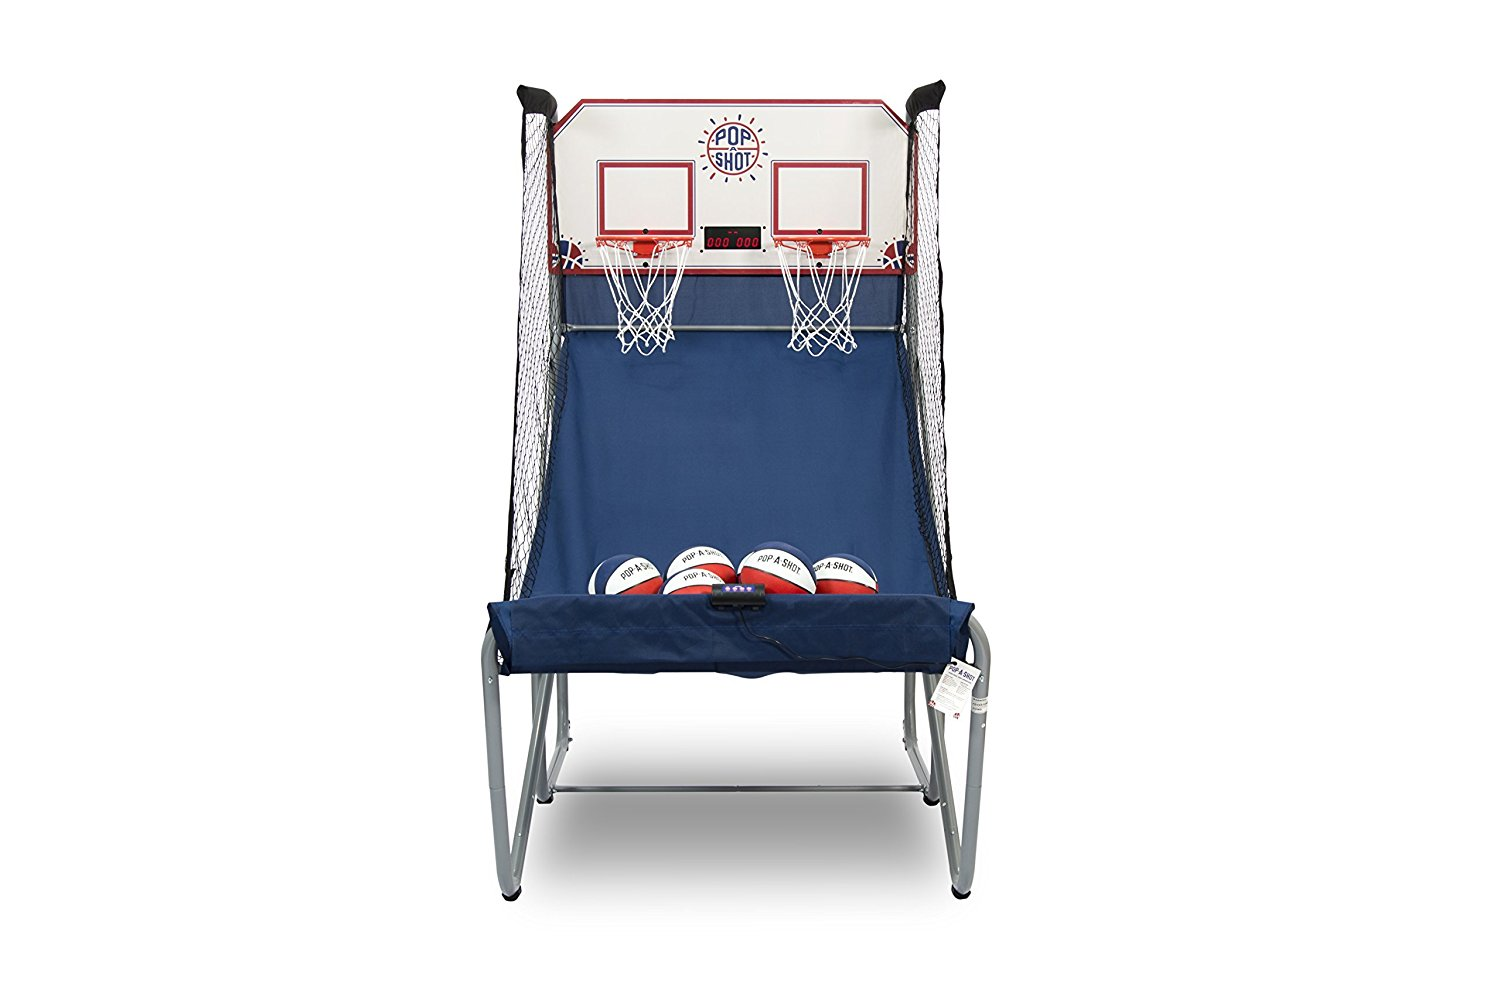 Pop-A-Shot Dual Basketball Arcade Game 2